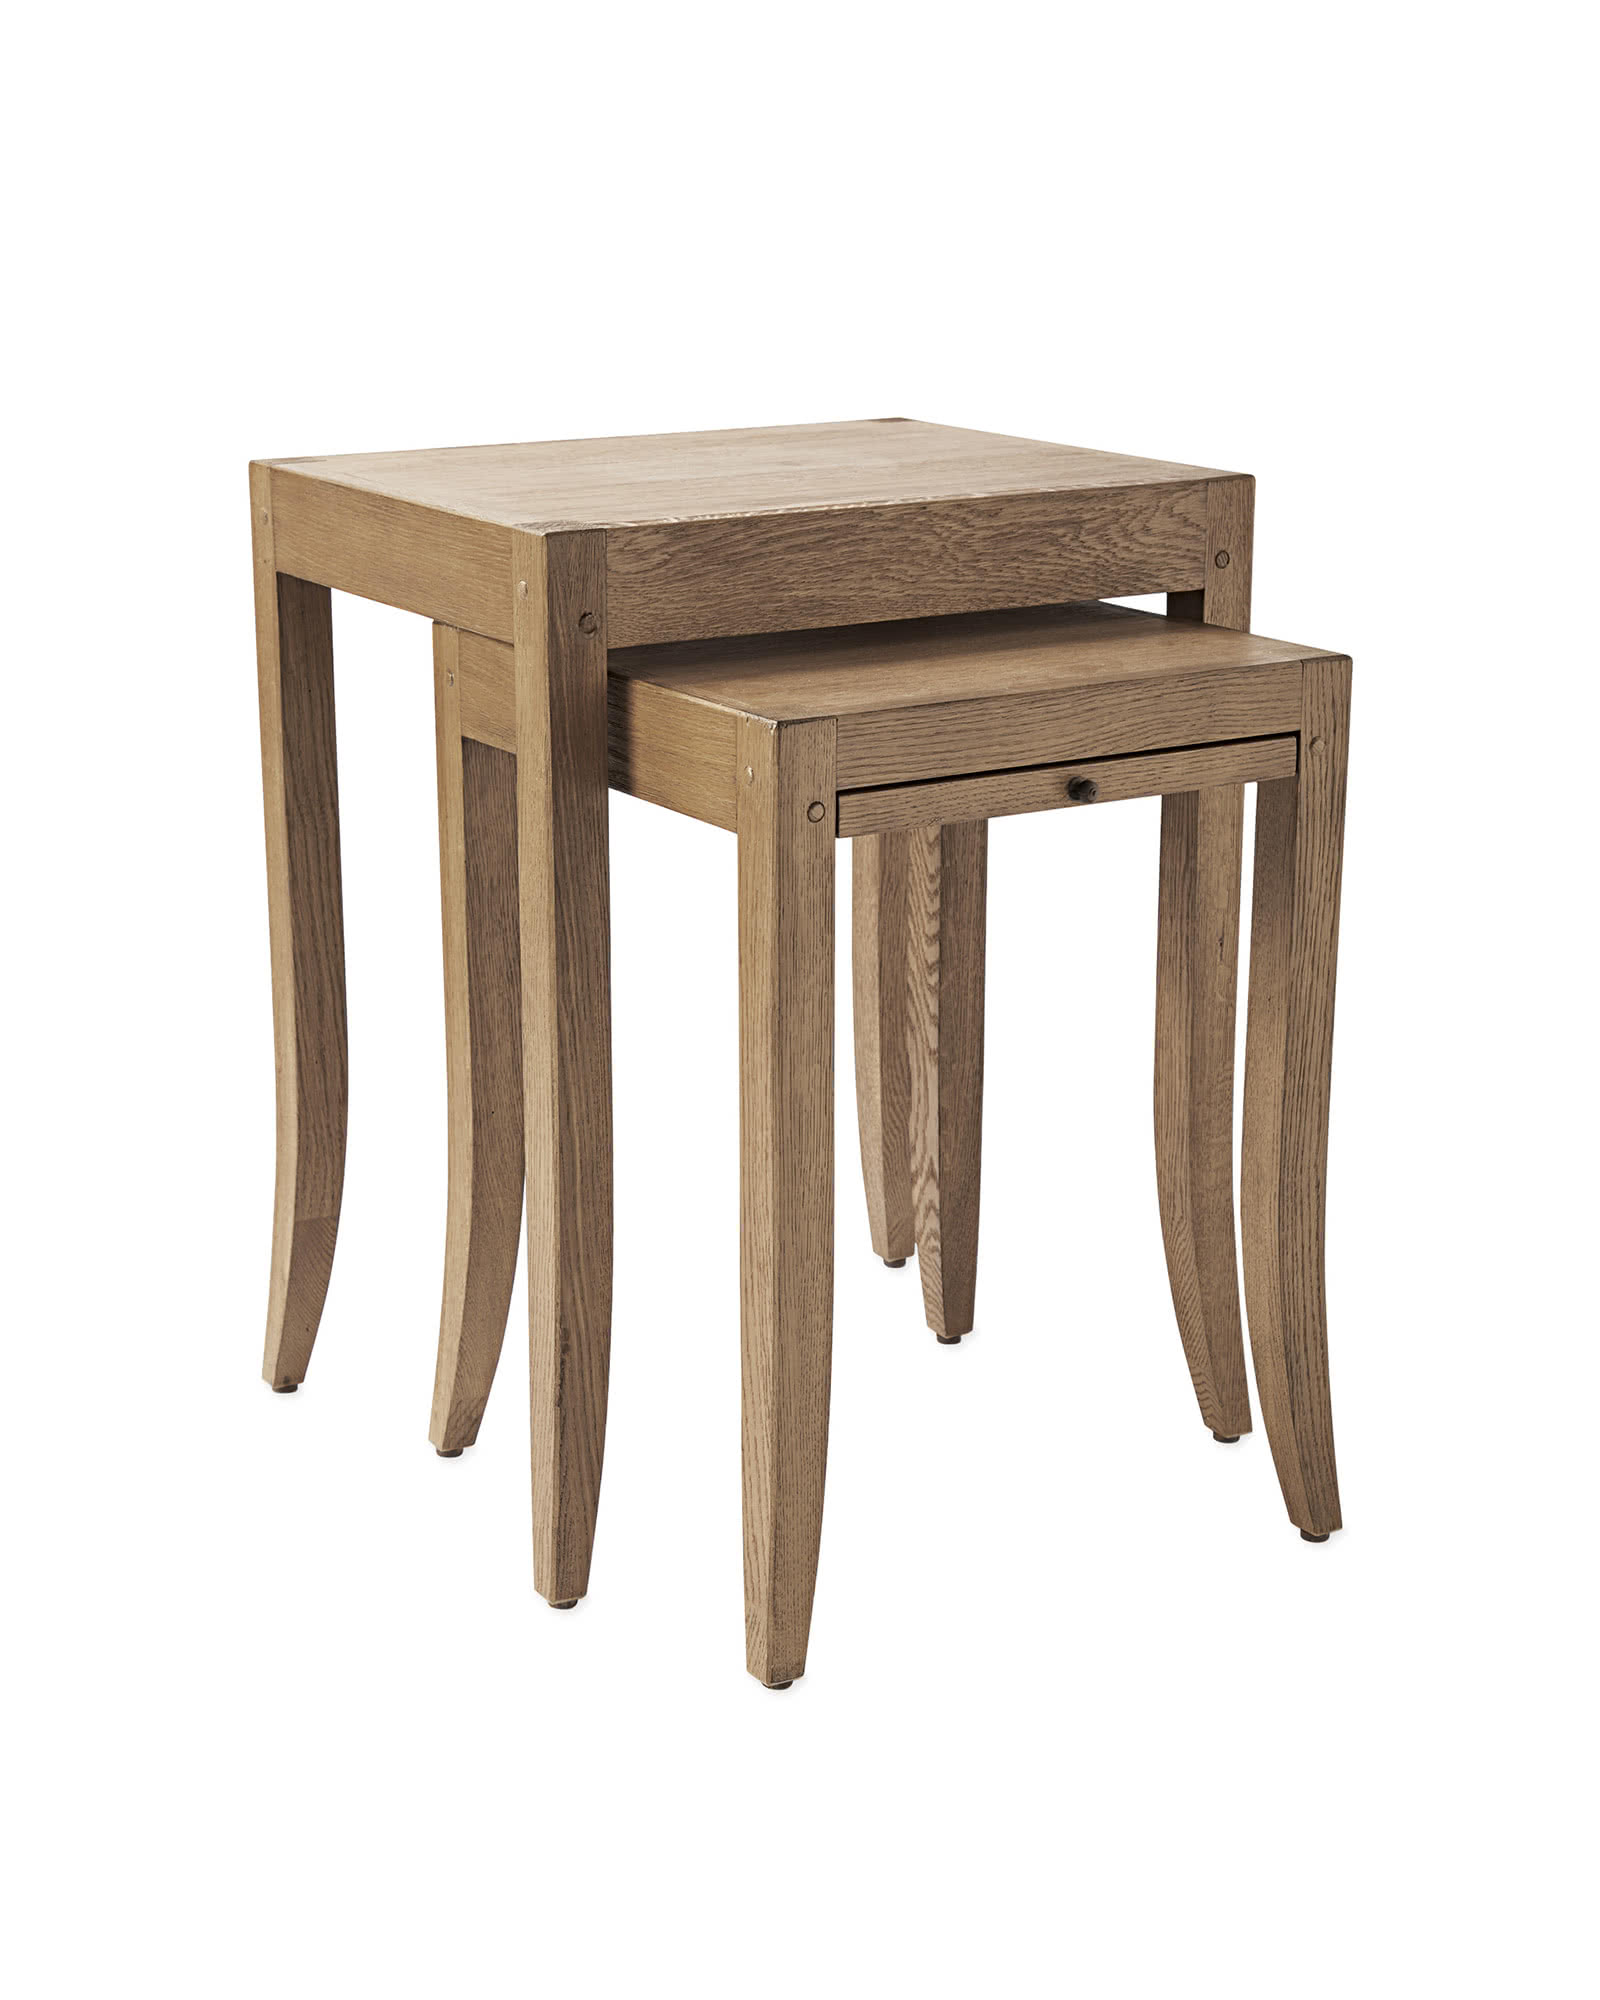 Emerson Nesting Tables,